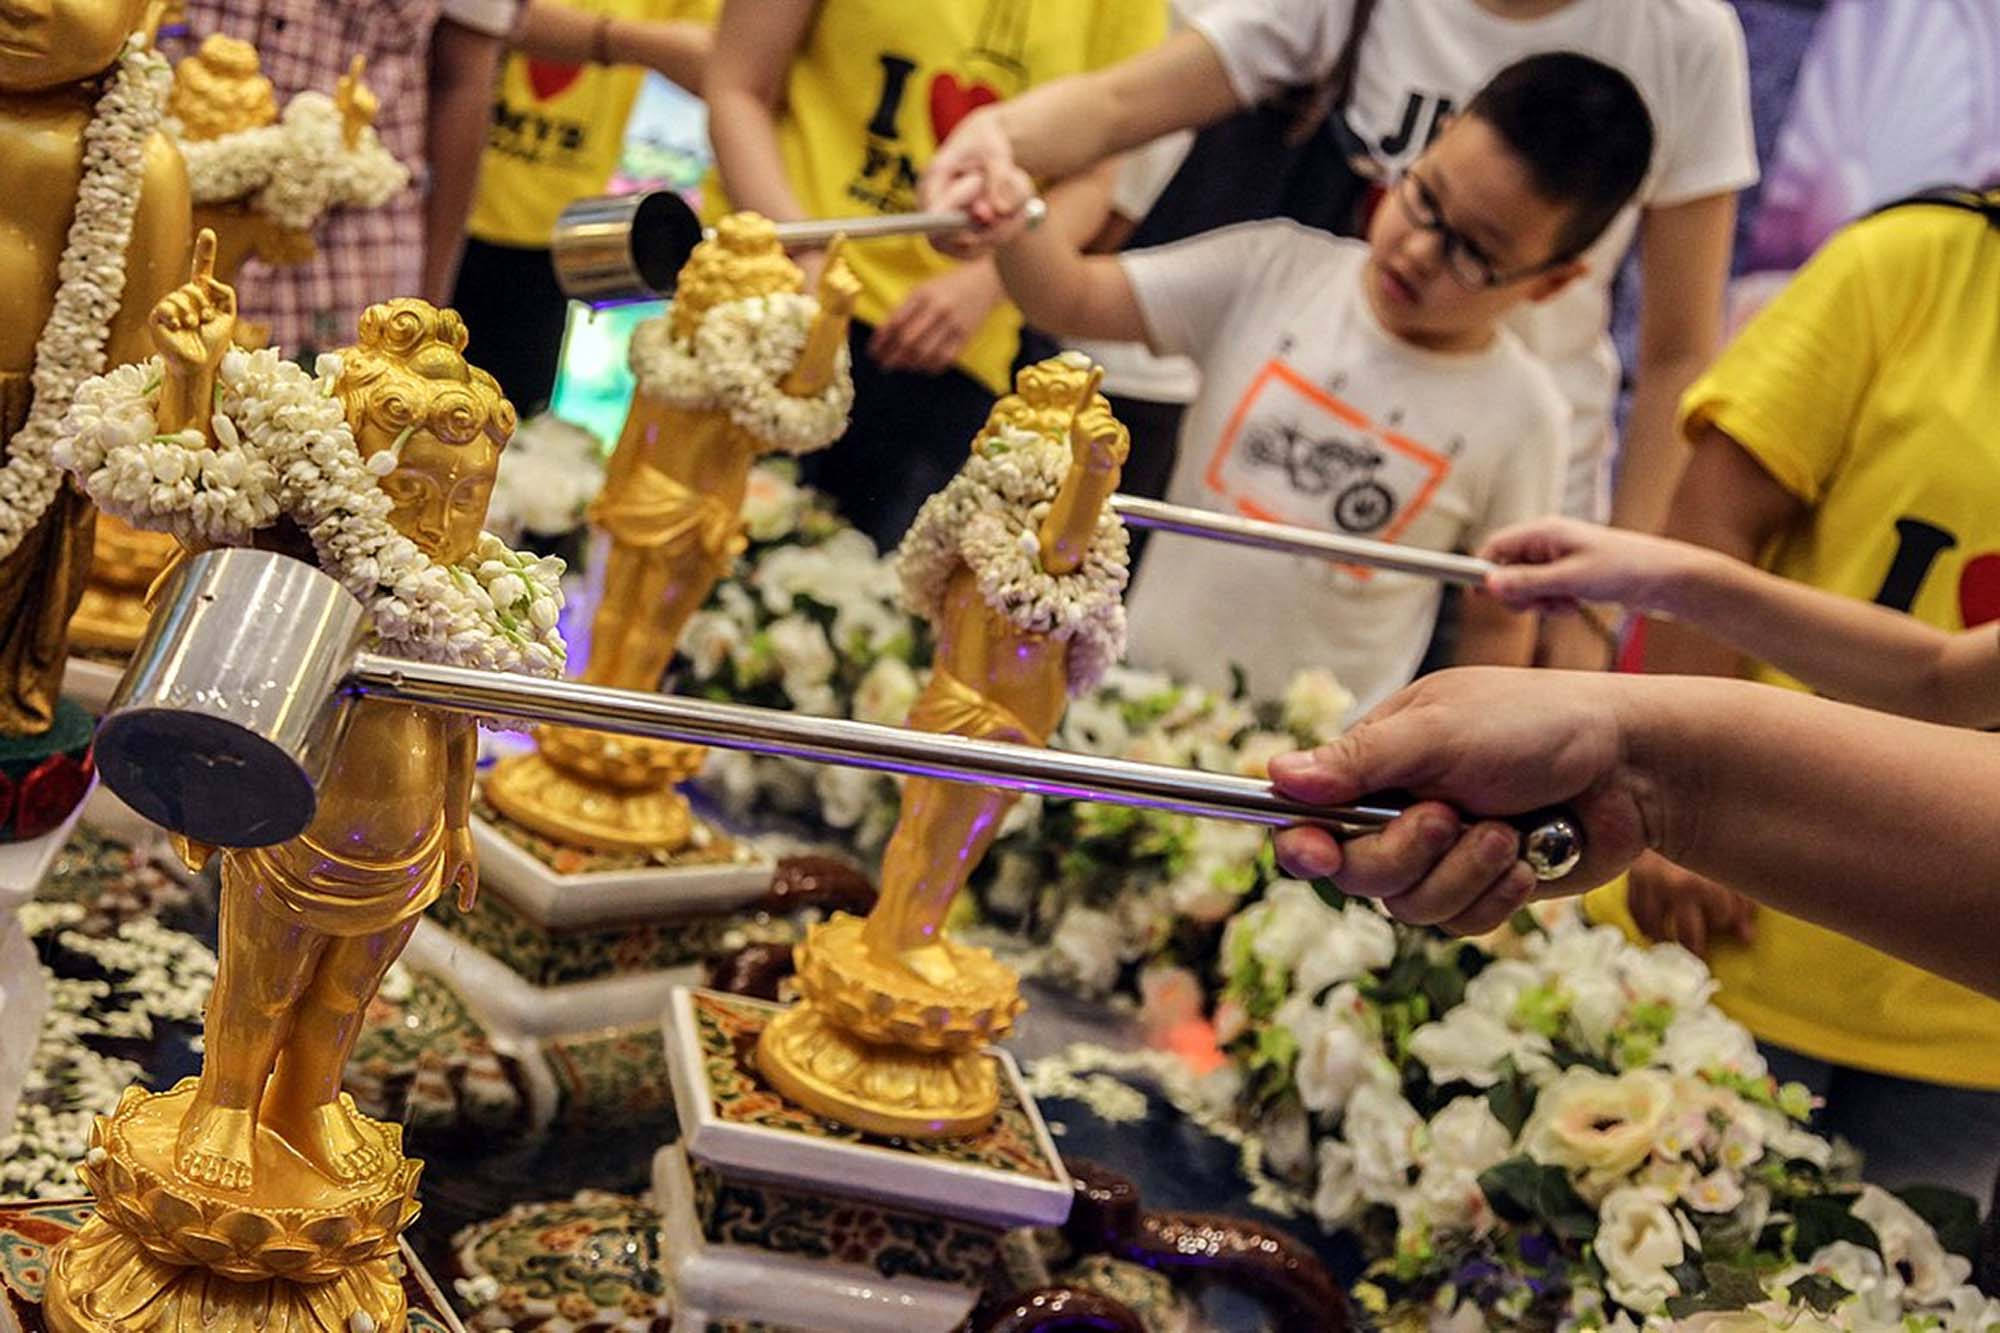 Ritual cleansing of Buddha statues in Indonesia, Indonesia